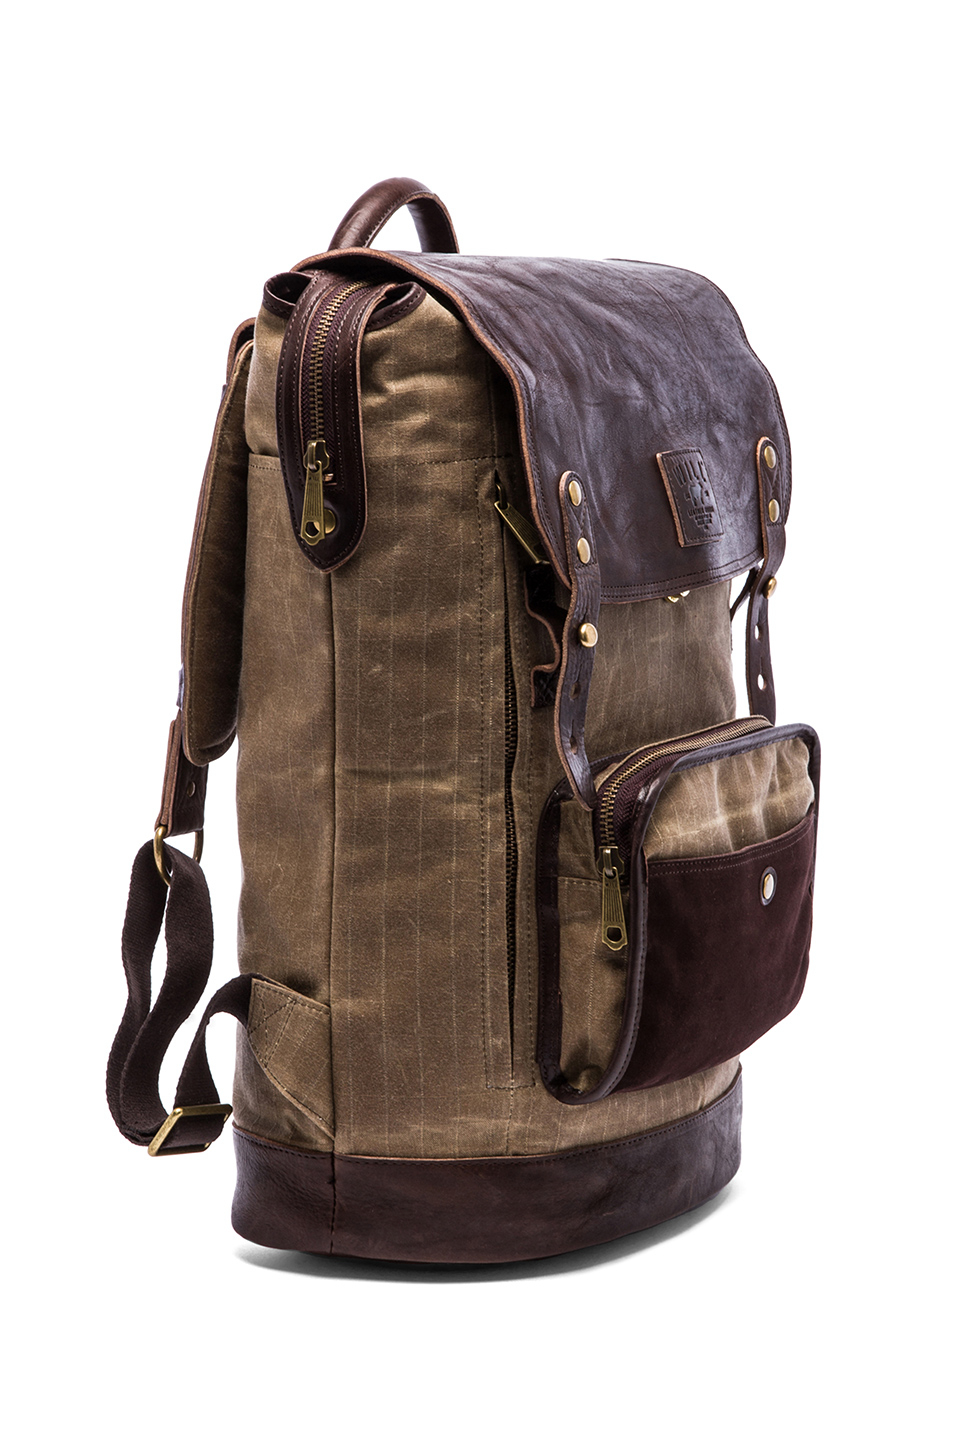 Will Leather Backpack kXbl0KMX